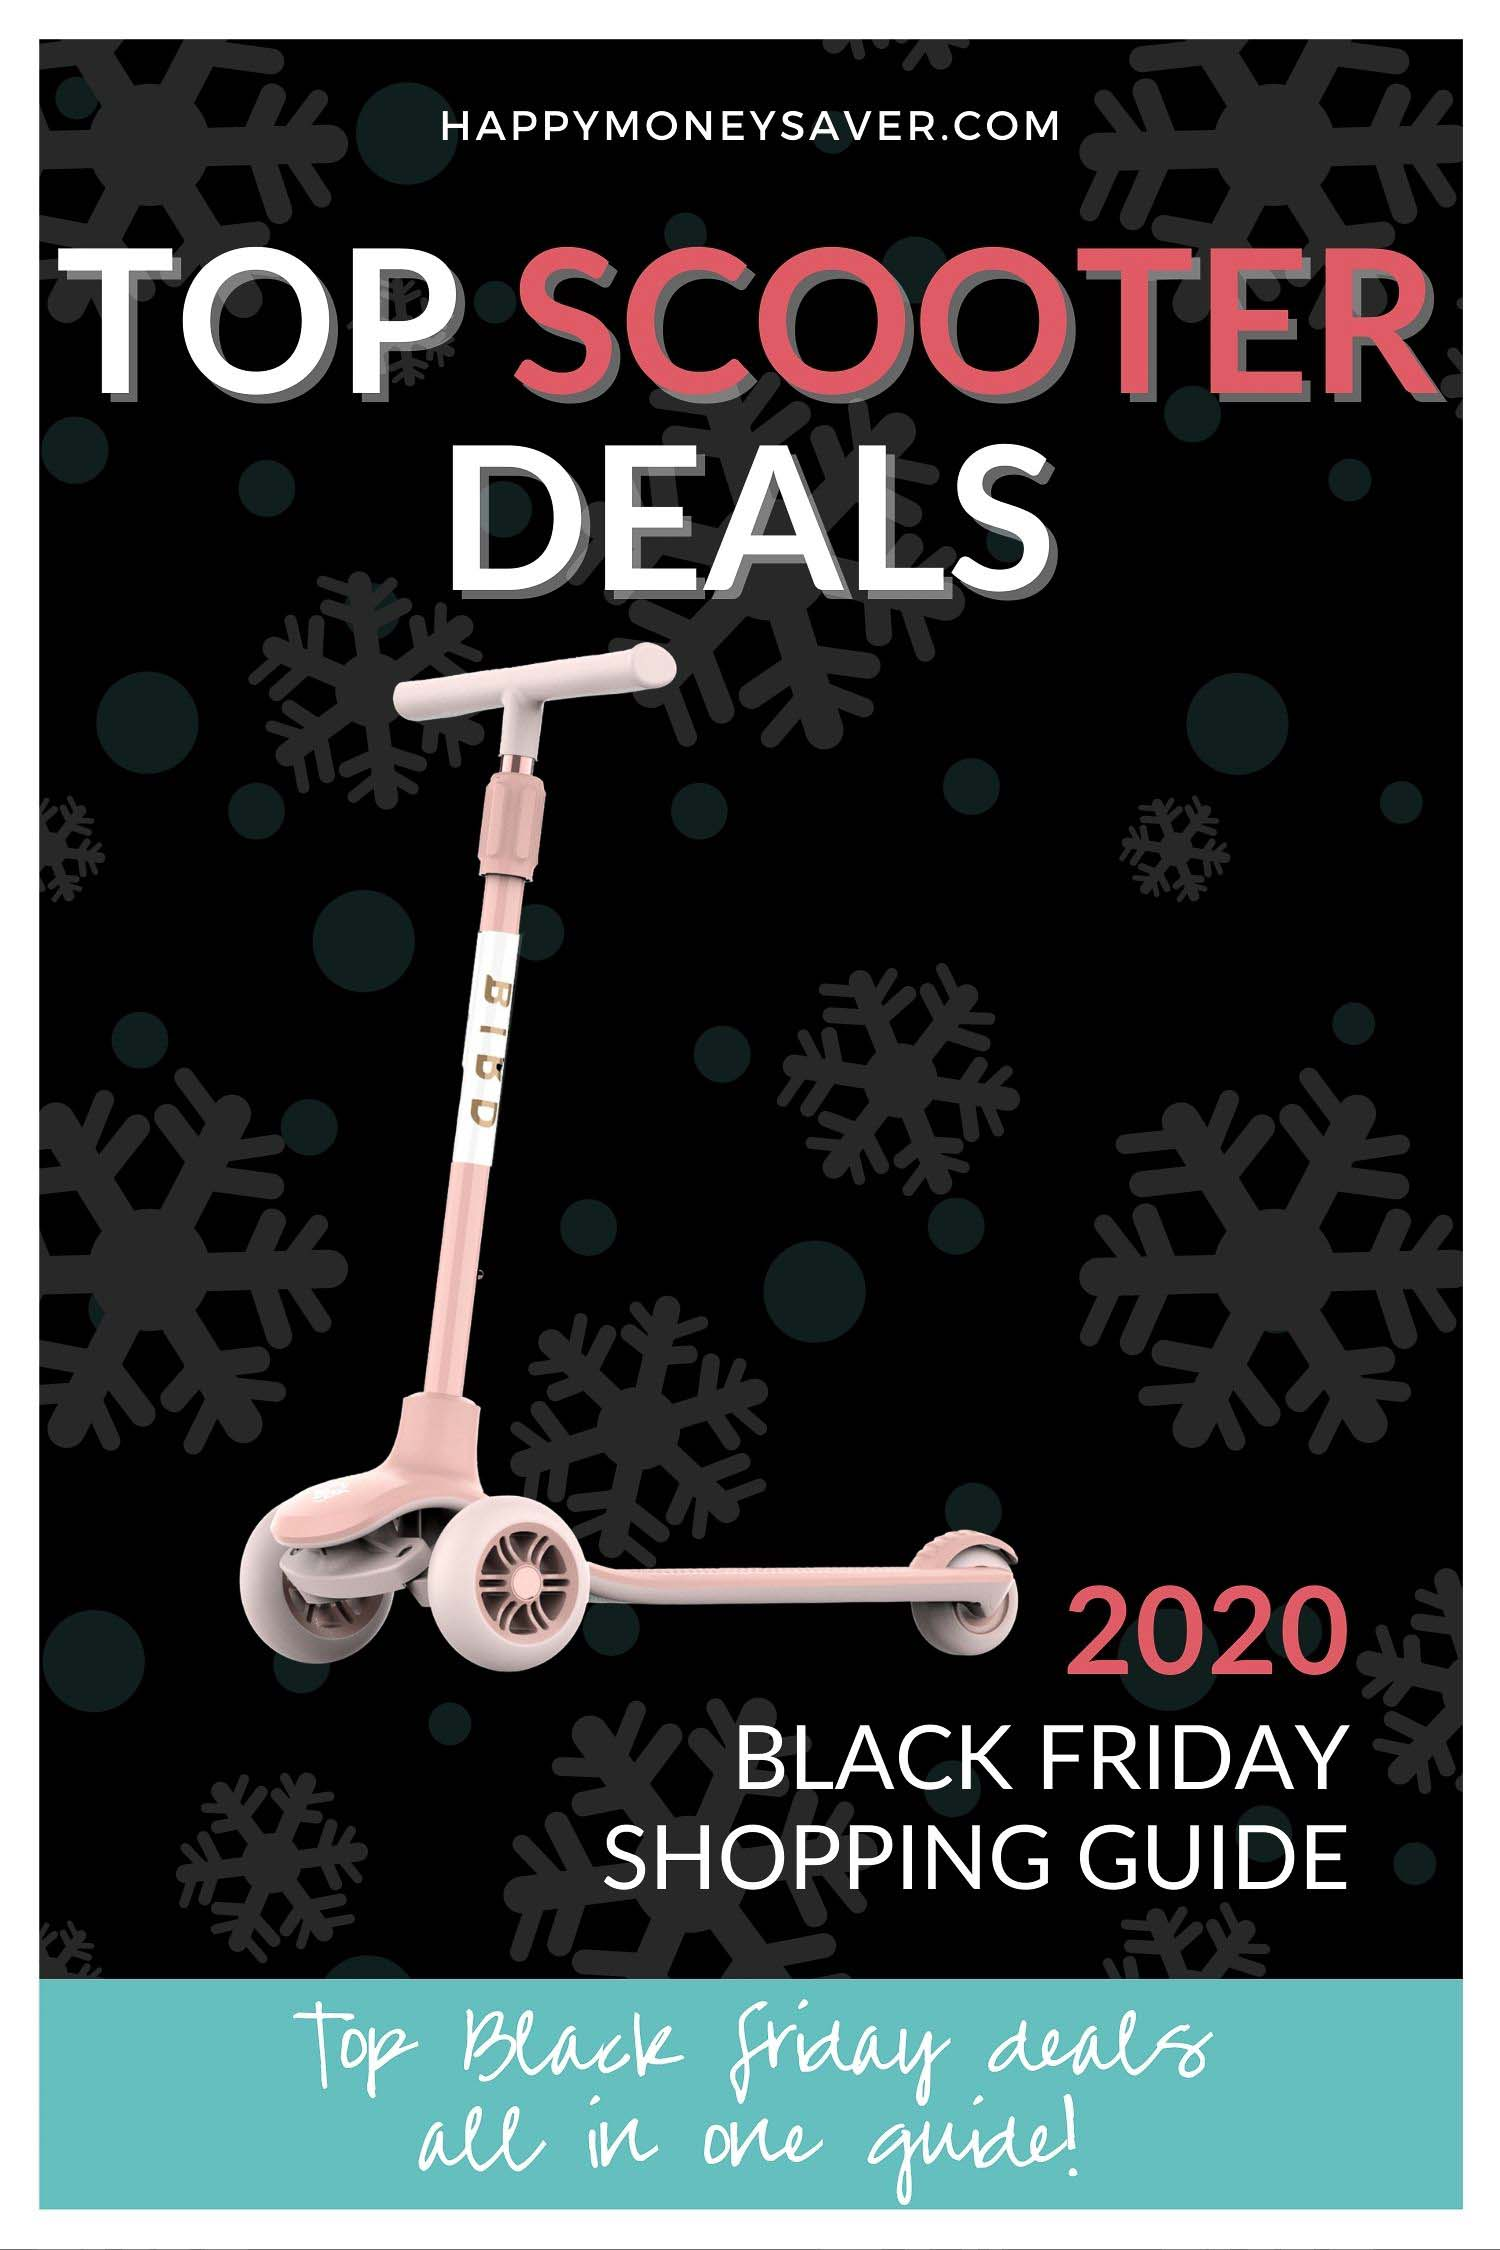 Black Friday Scooter Sale roundup of deals for 2020 graphic with image of scooter on it and words.